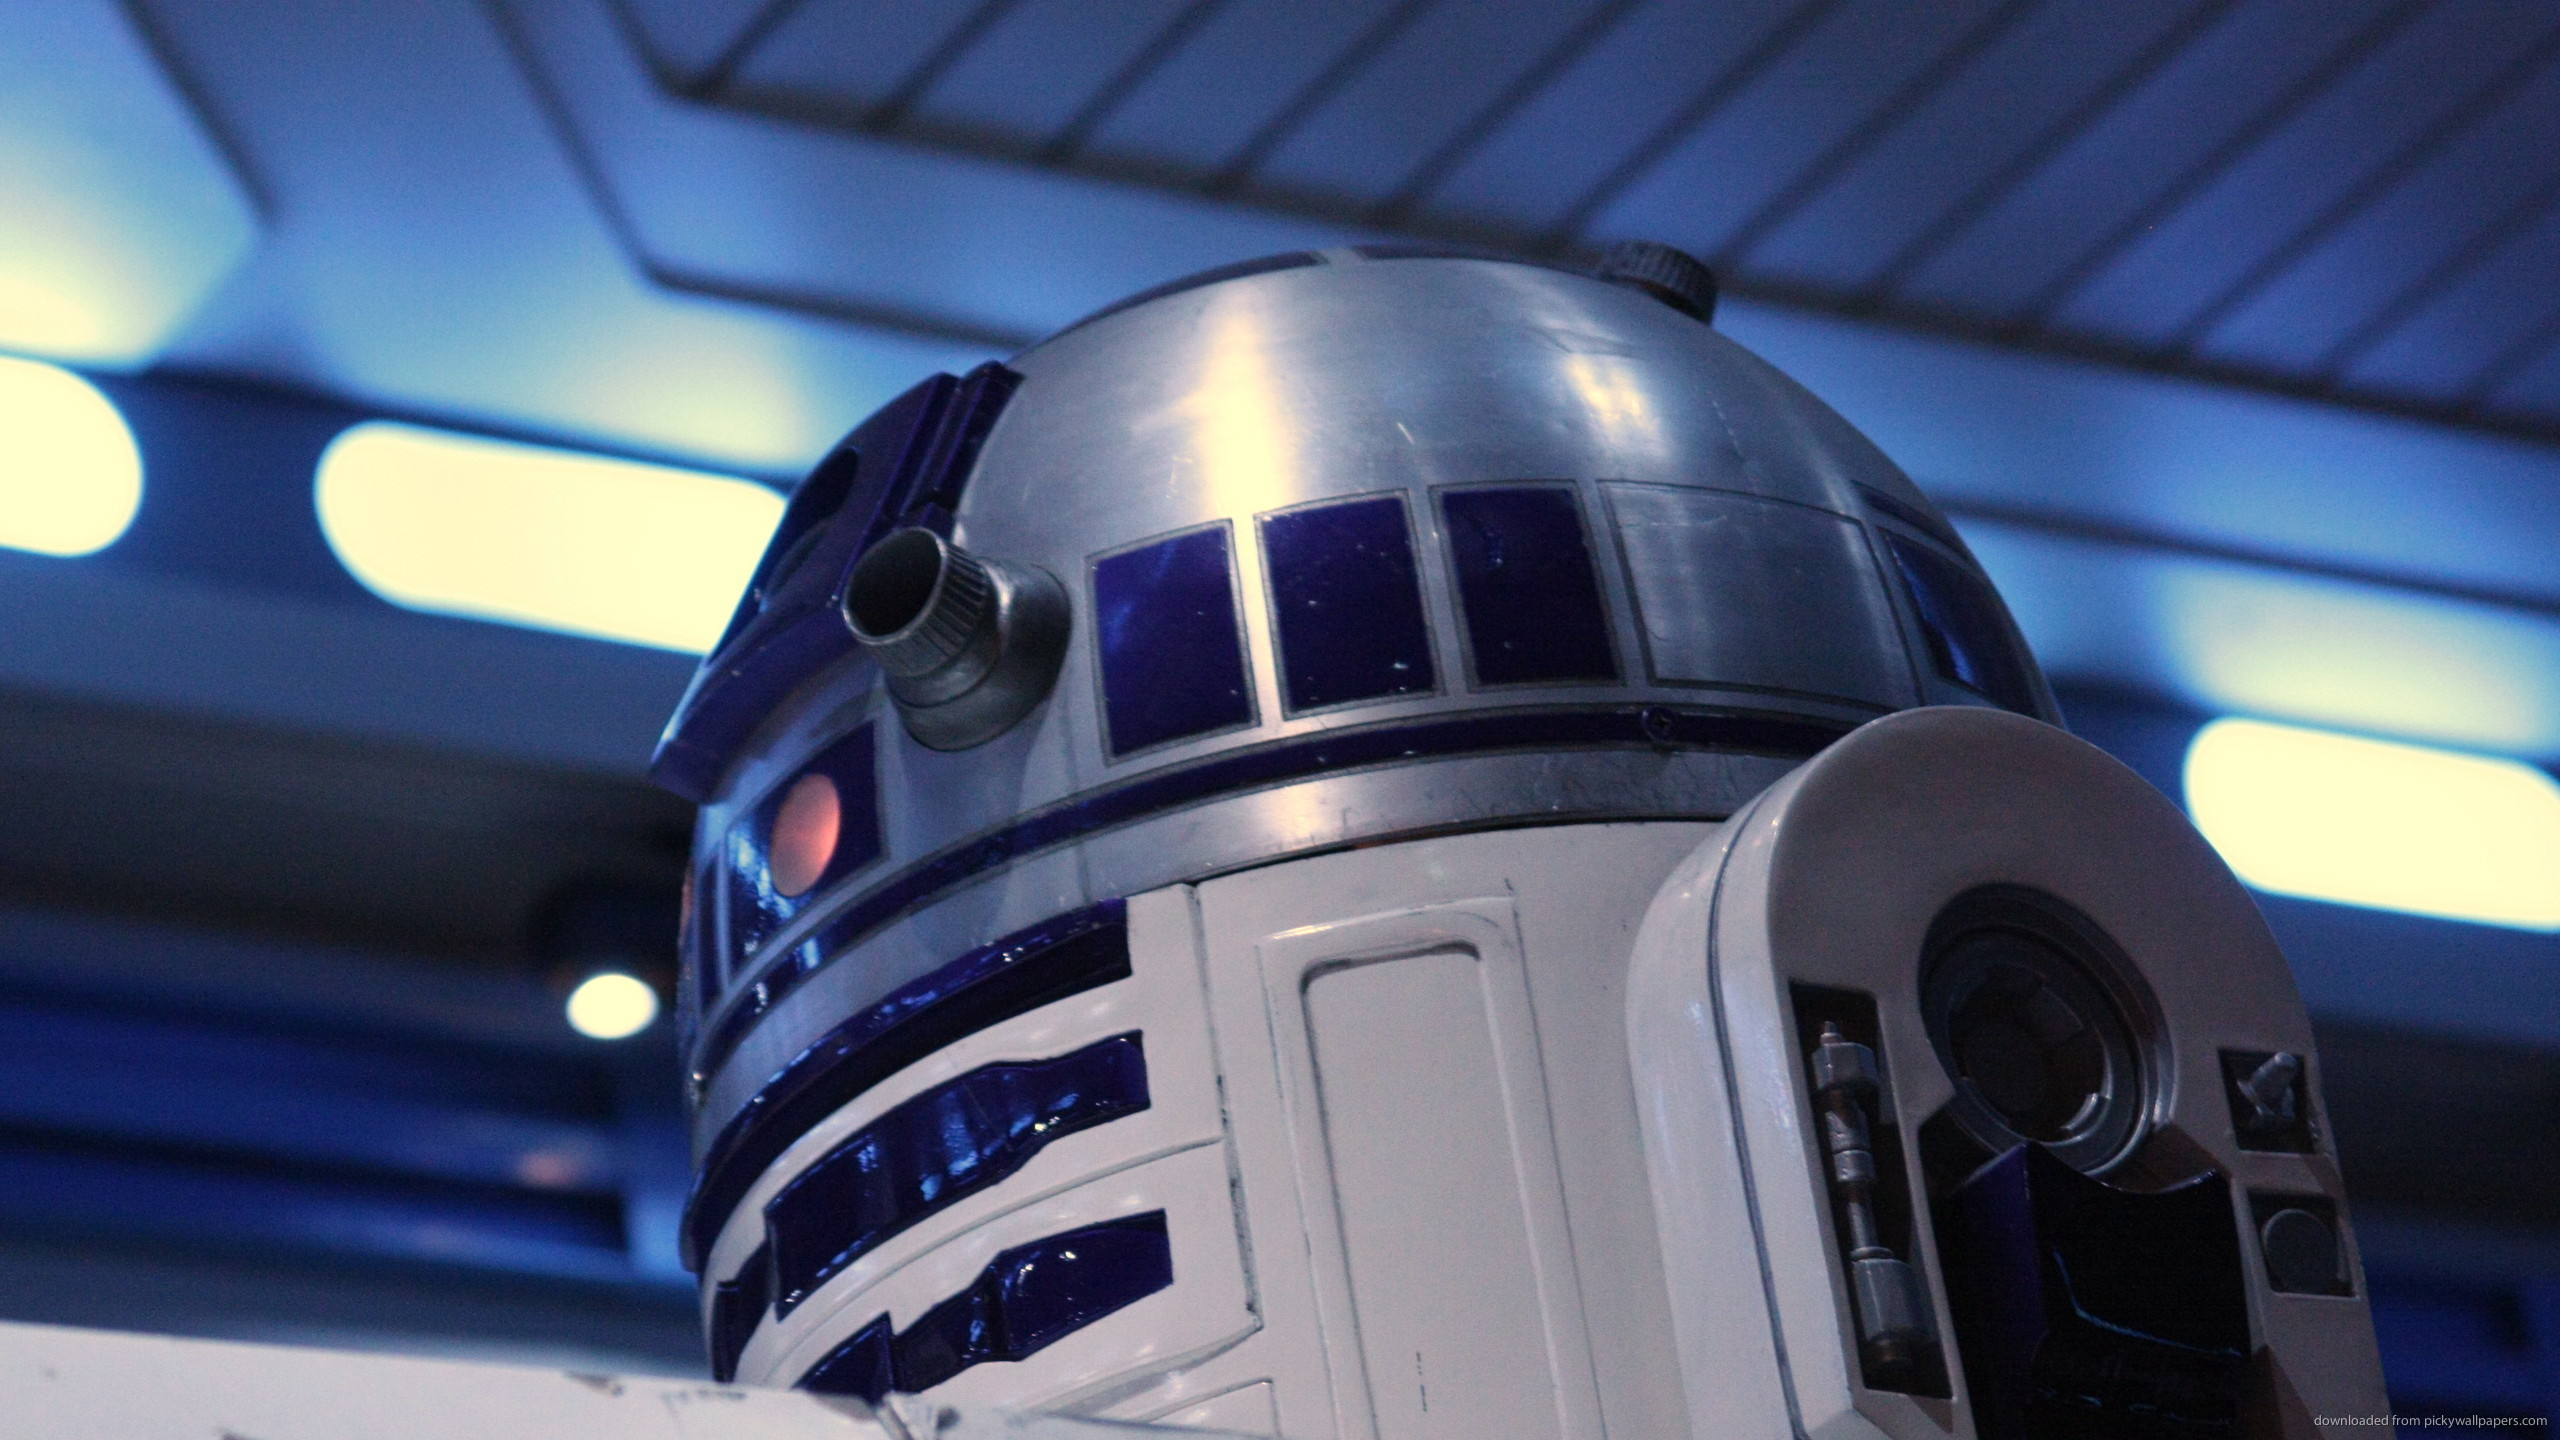 Mounted R2D2 for 2560×1440